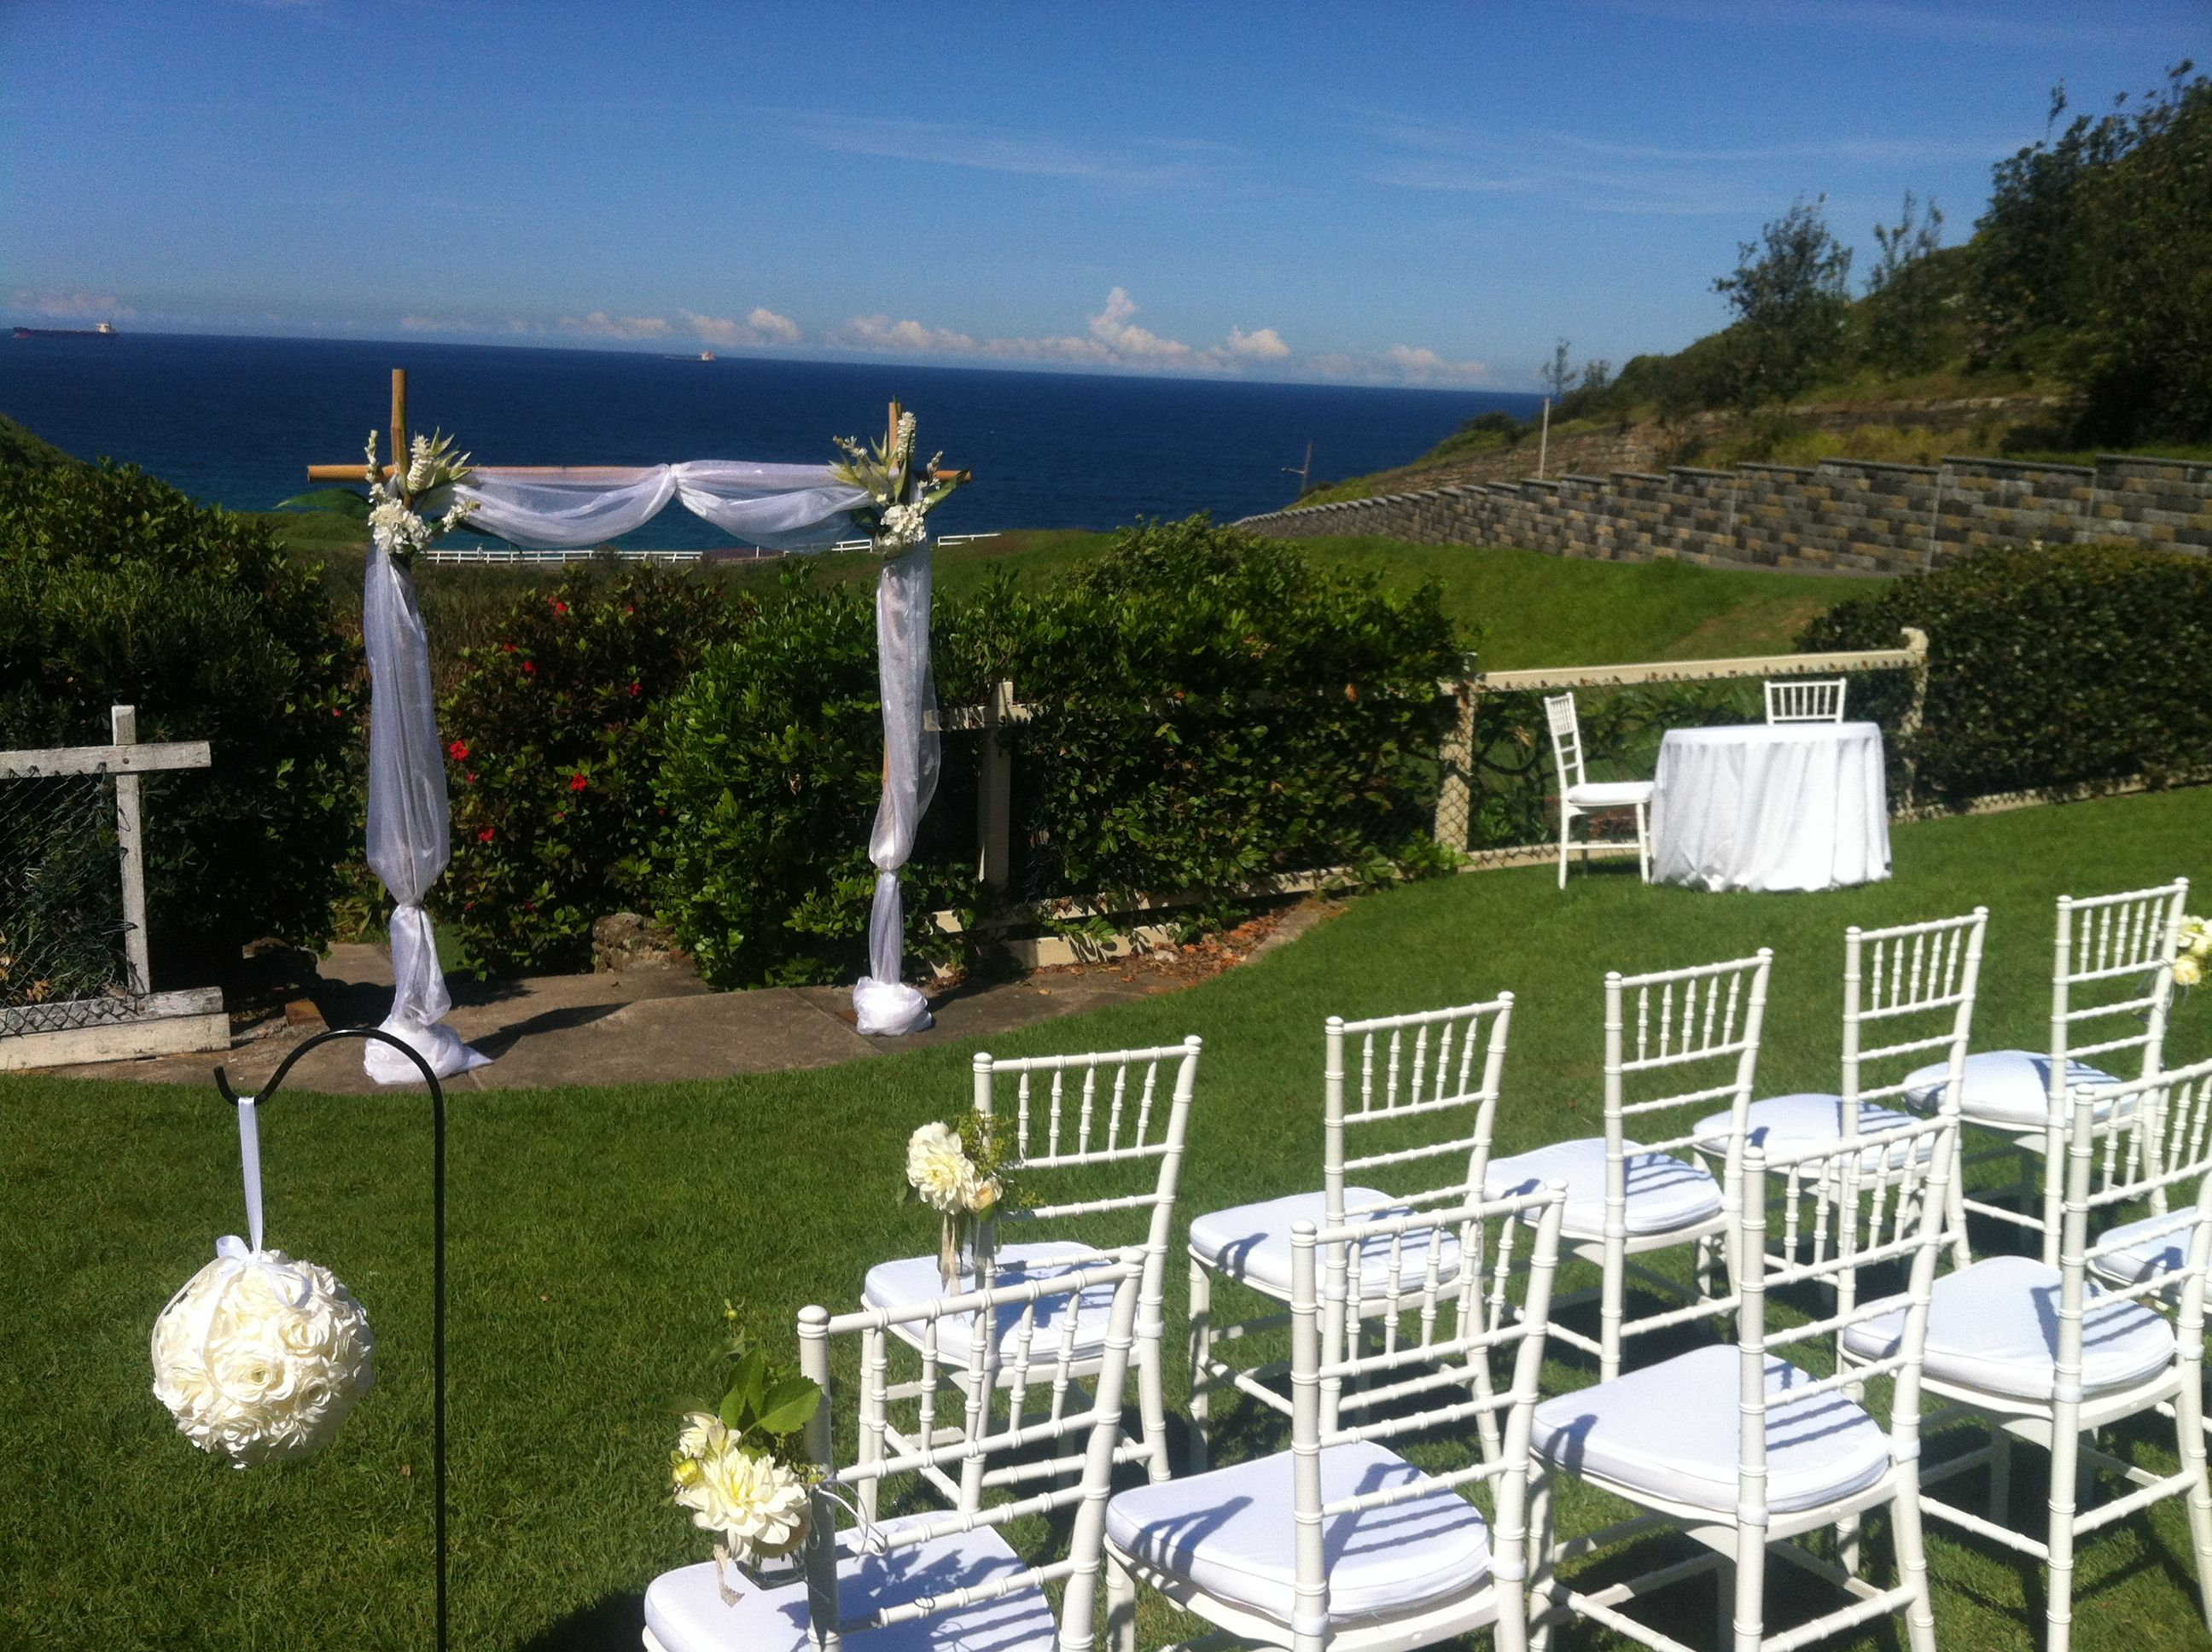 Outdoor wedding ceremony white tiffany chairs kingedwardpark outdoor wedding ceremony white tiffany chairs kingedwardpark bambooarch junglespirit Images